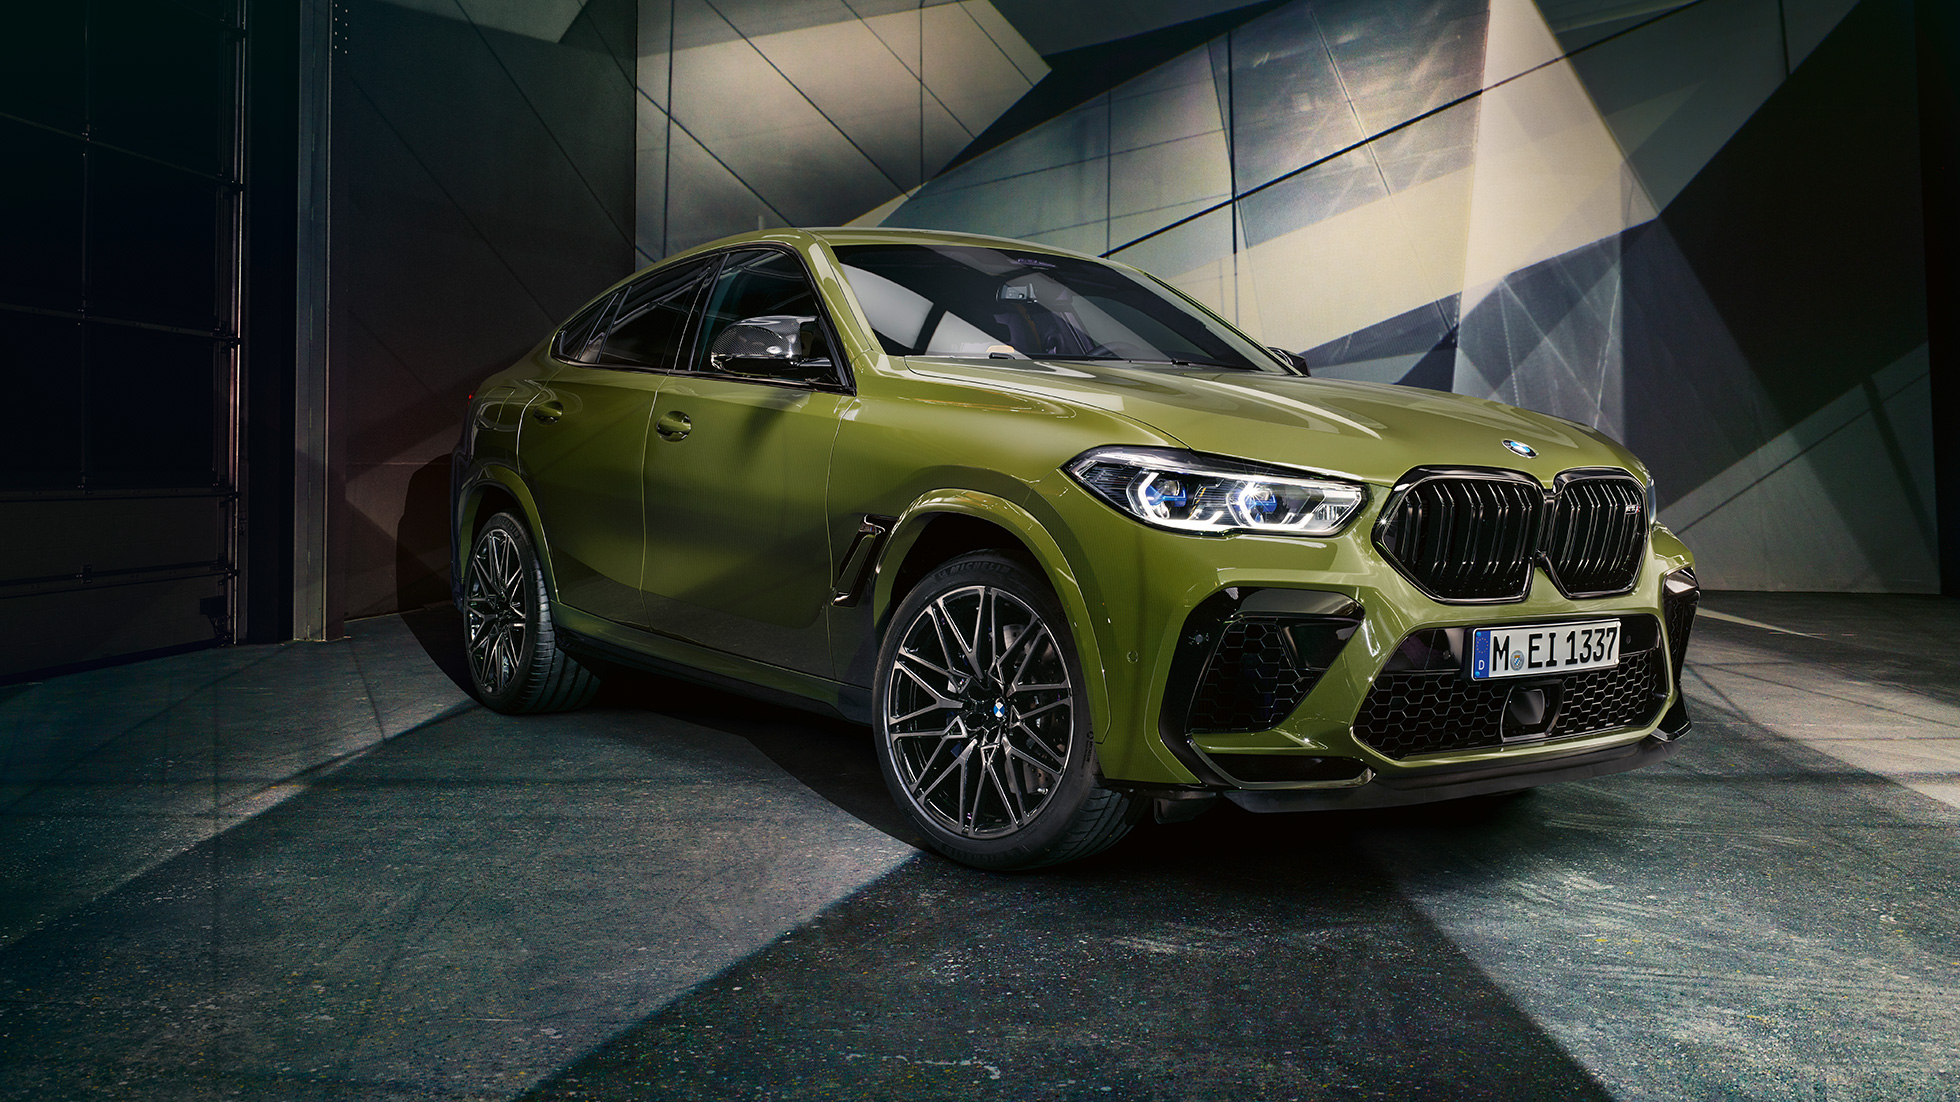 M 雙腎格柵 BMW X6 M Competition F96 BMW Individual 特殊漆面 Urban Green SUV 四分之三正面視圖